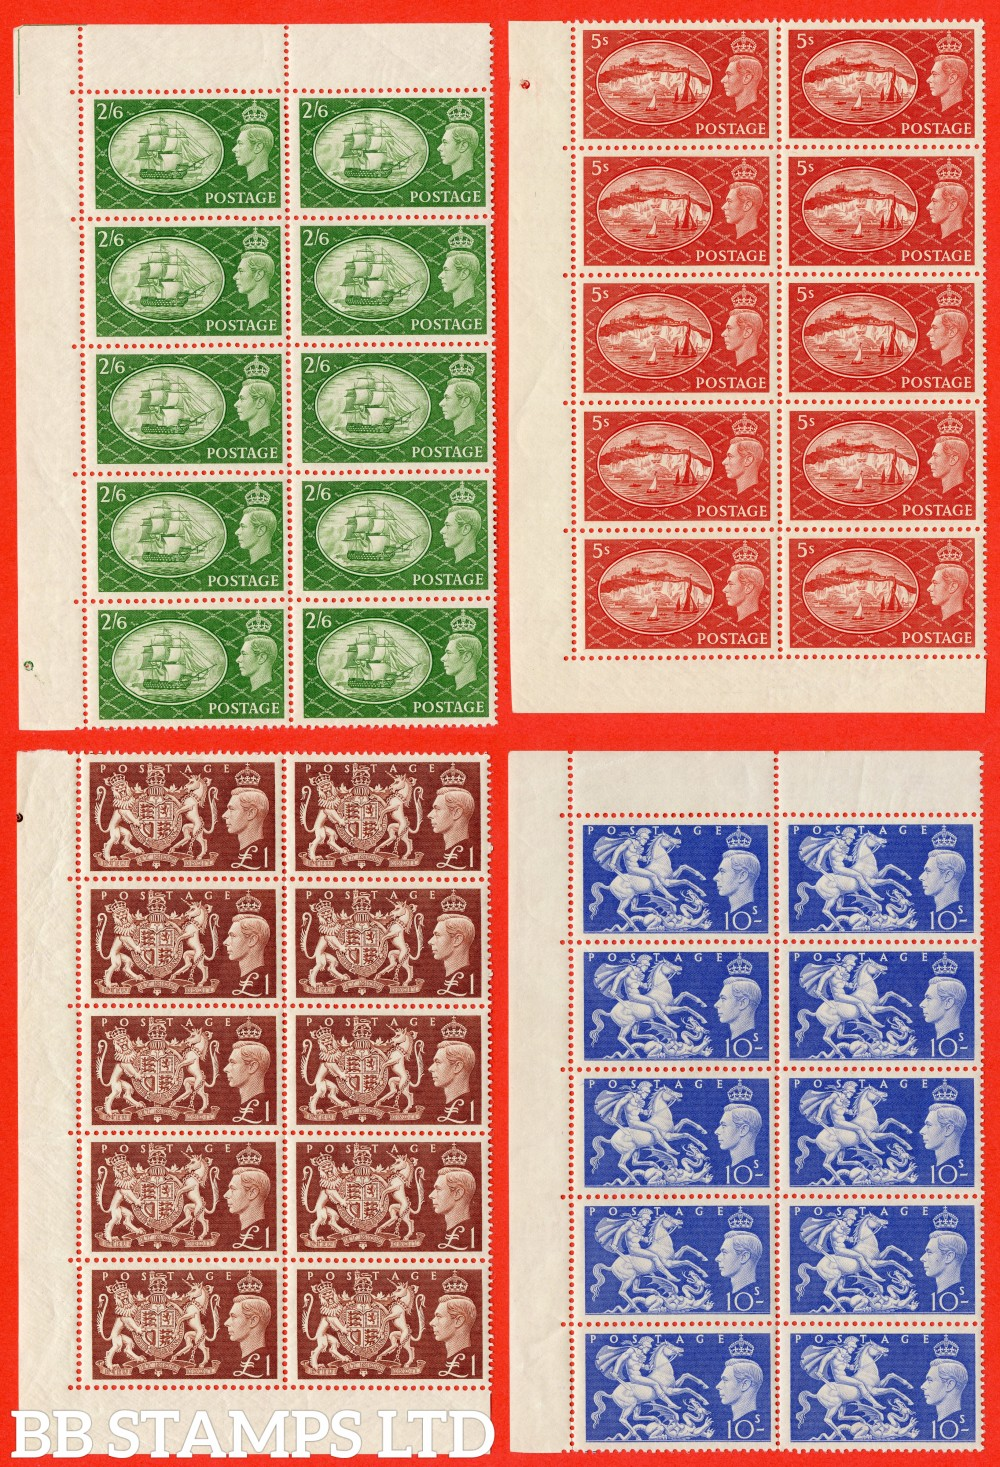 SG. 509 - 512. Q35 - Q38. 2/6 - £1.00. 1951 Festival high values. A superb UNMOUNTED MINT complete set of 4 in left hand marginal blocks of 10.